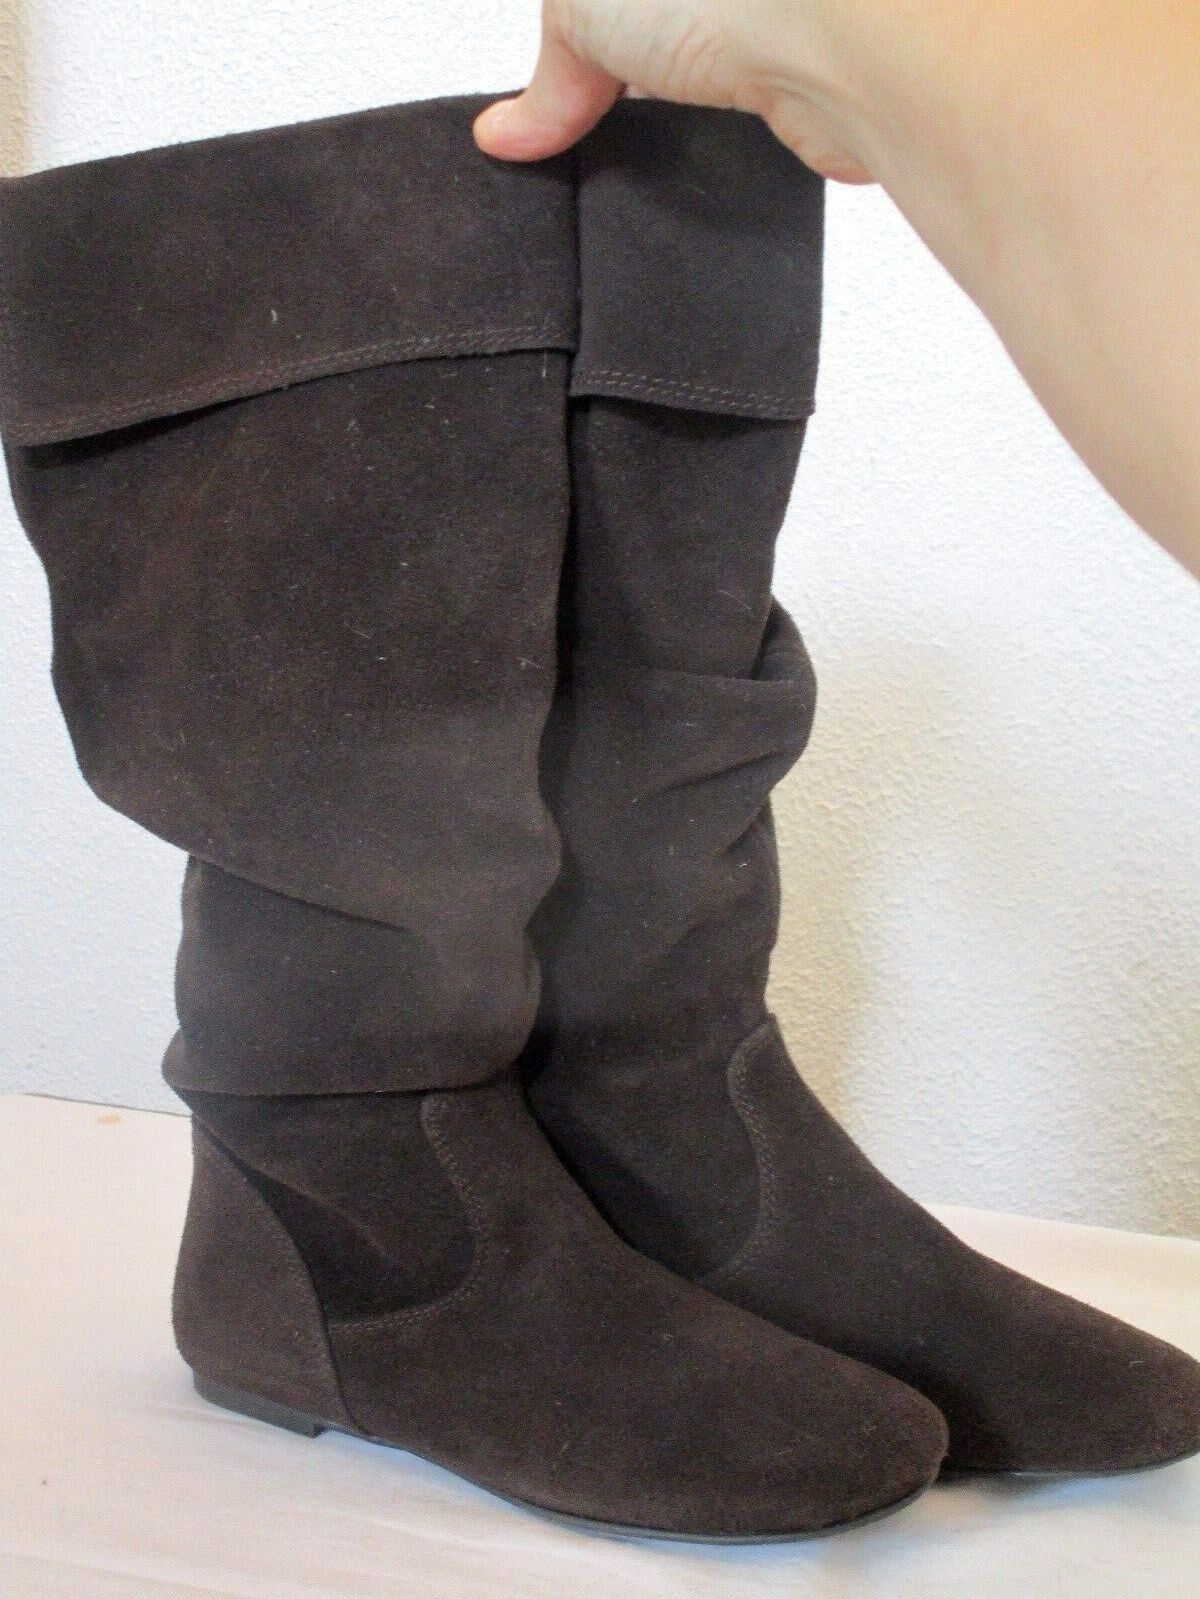 GIANNI BINI JACKPOT Dark Brown SUEDE KNEE HIGH SLOUCH BOOTS WMNS SIZE 5.5